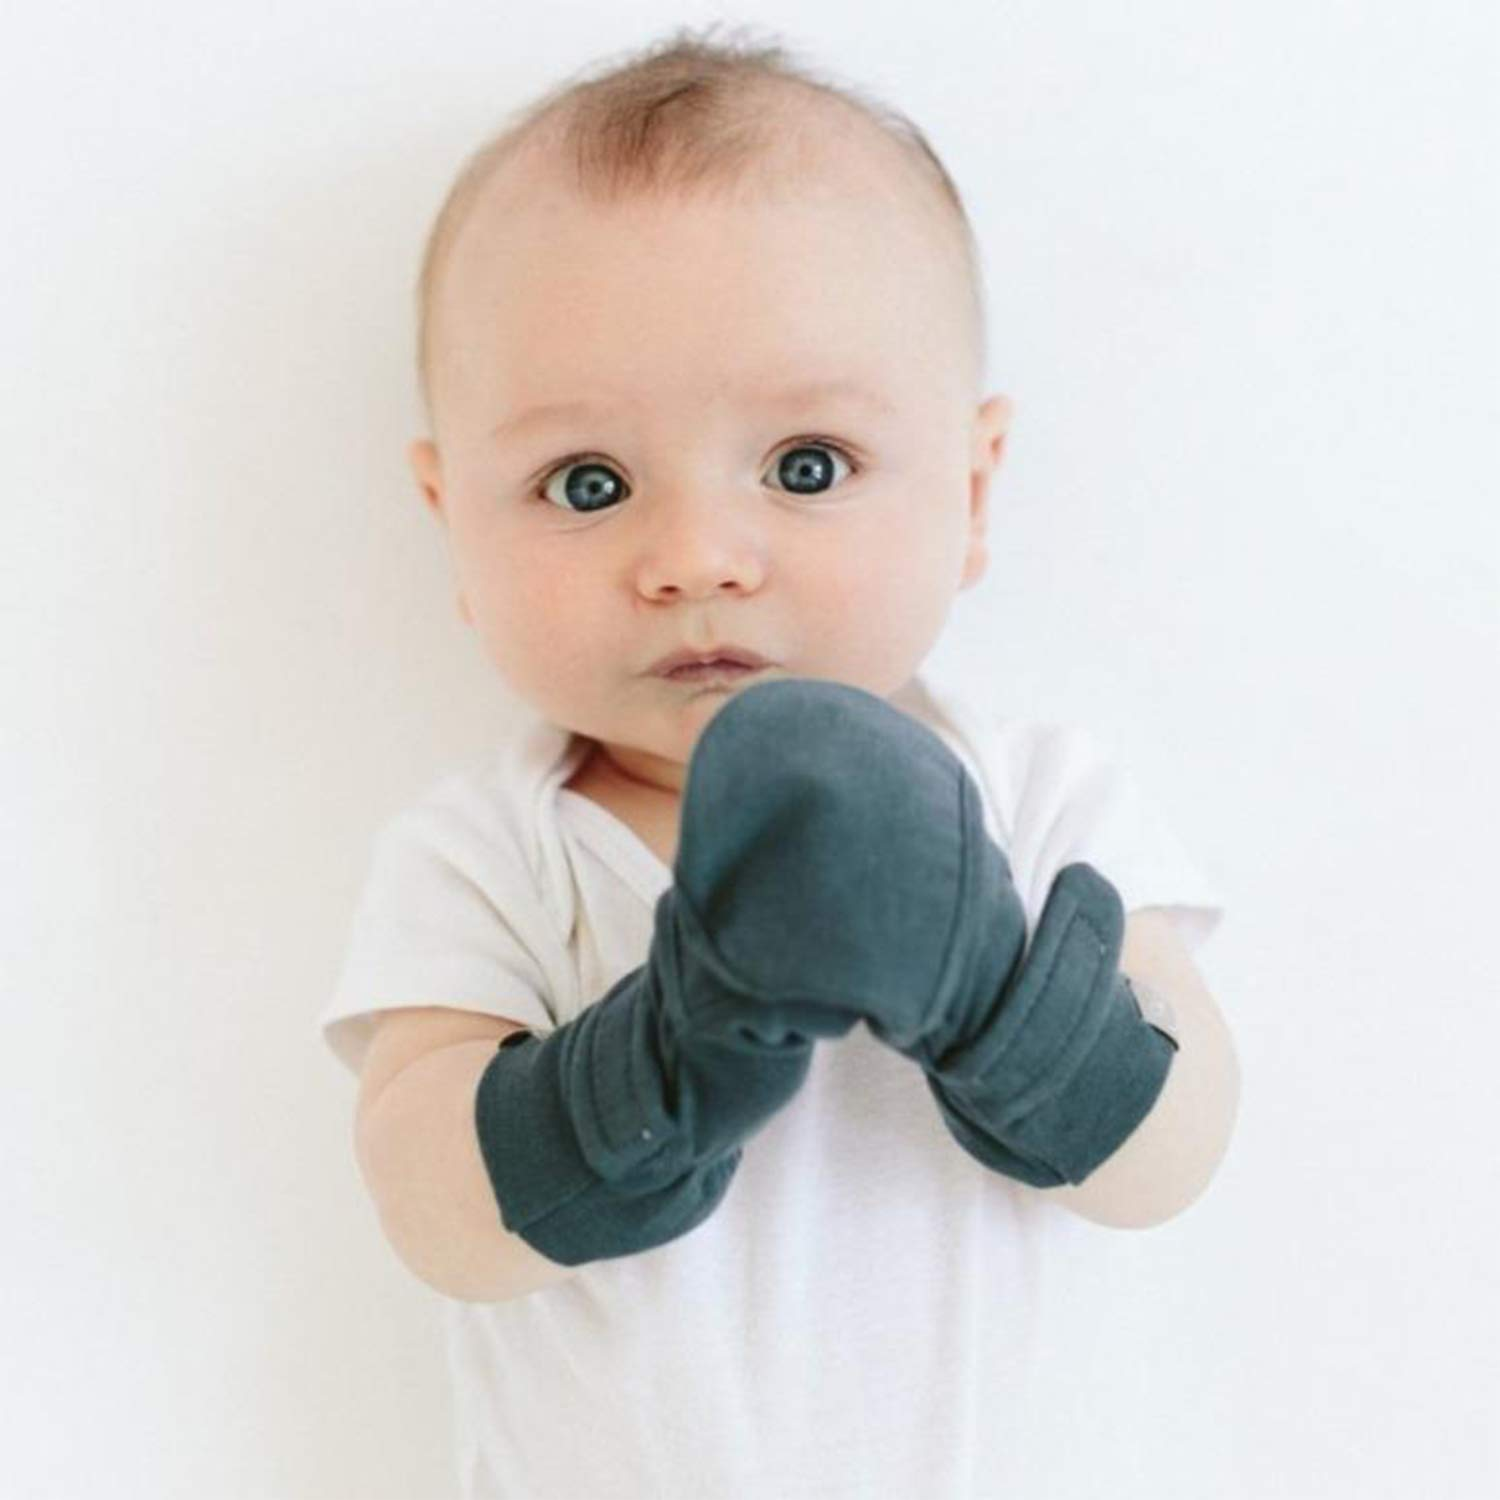 Goumi Baby Booties and Mittens Bundle, Bamboo / Organic Cotton Newborn Mitts and Boots, Adjustable & Soft (0-3 Months, Midnight)